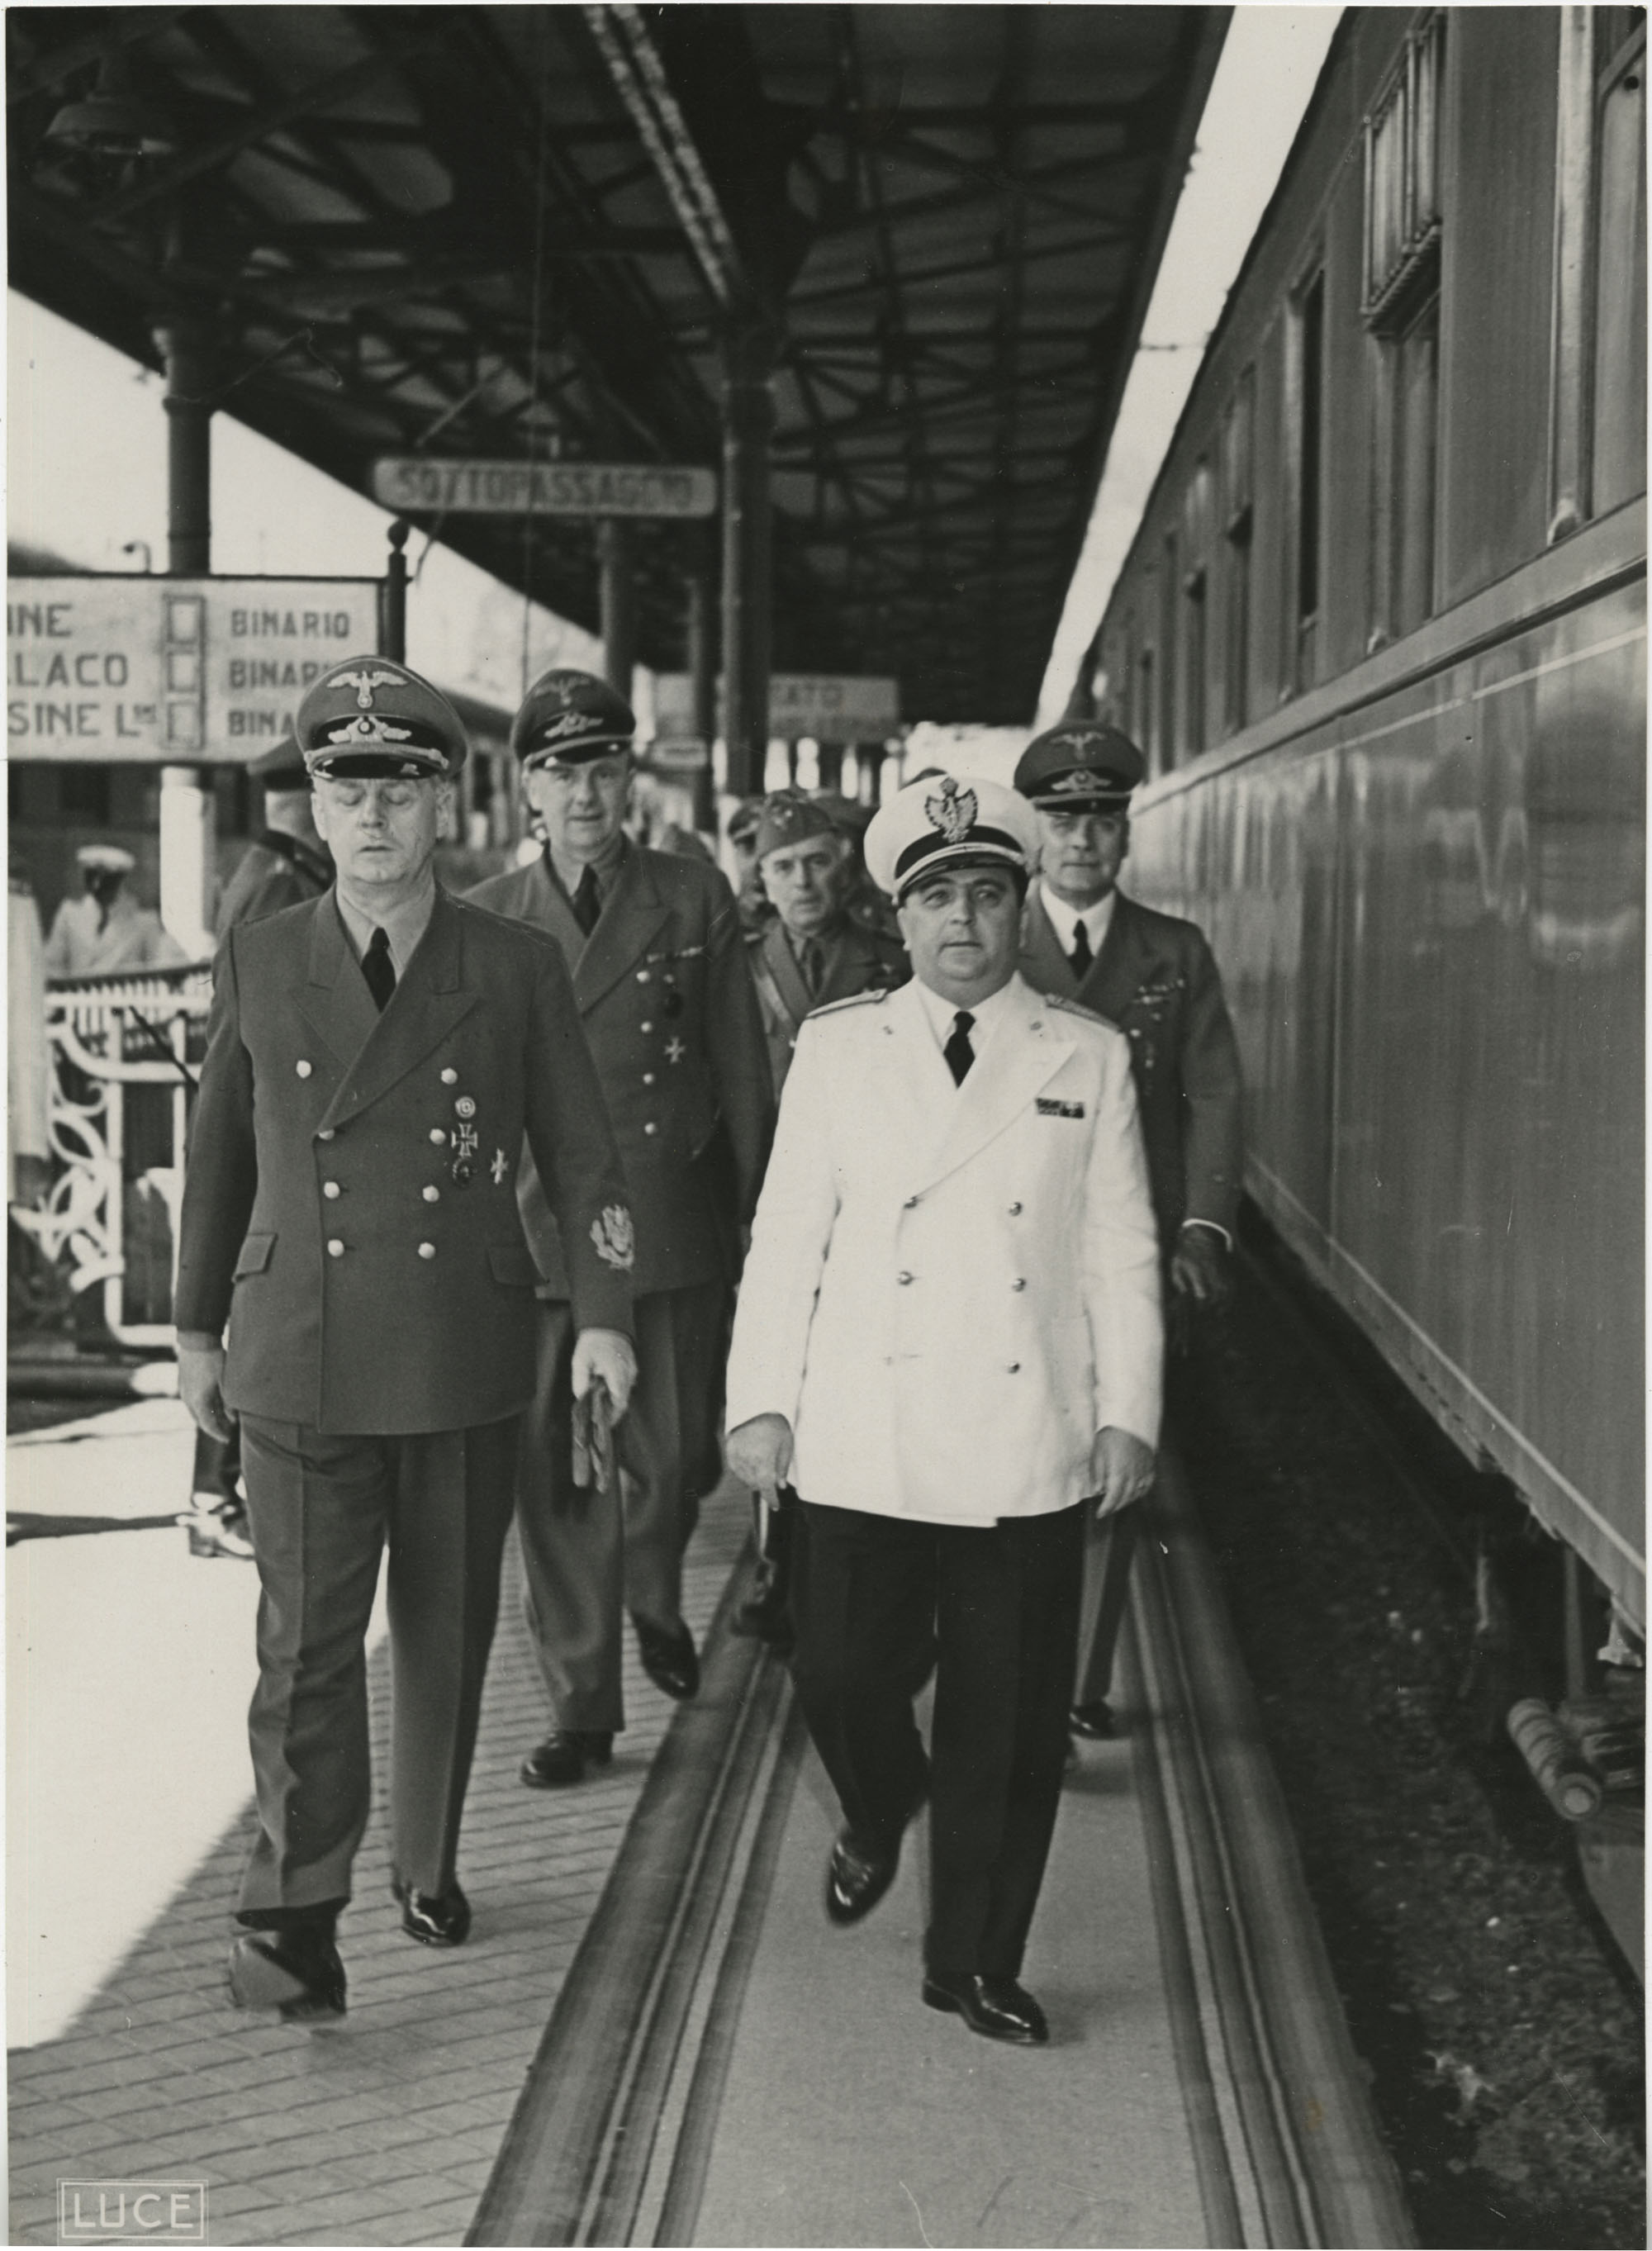 Military officials at a train station, Photograph 1